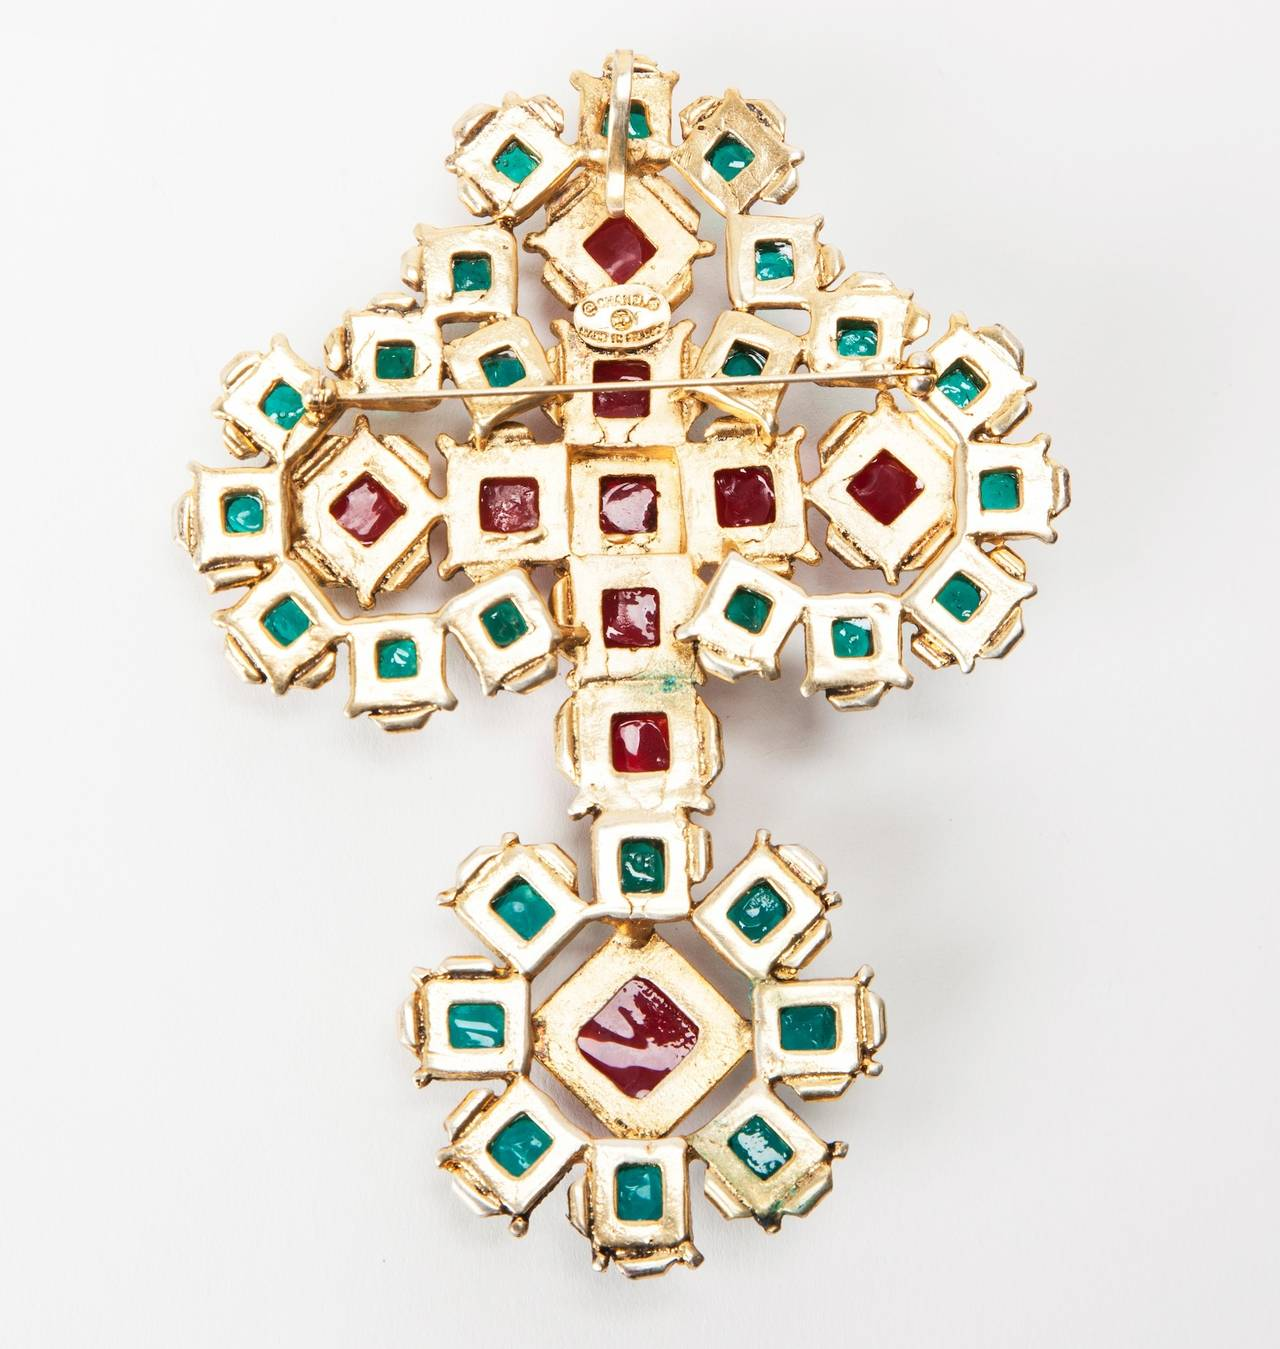 Massive Chanel Renaissance Cross Brooch/Pendant In Excellent Condition For Sale In Riverdale, NY